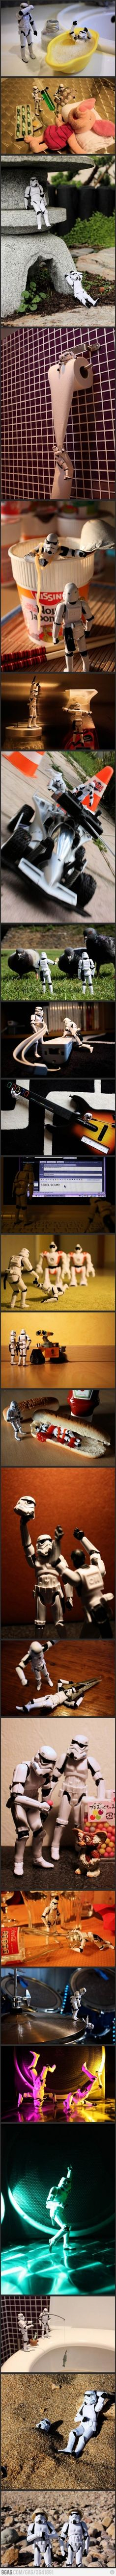 Stormtrooper - Moments of life. I'm not a rabid Star Wars fan, but this gives me good giggles and nostalgia for the first time I saw Return of the Jedi, in the theater when I was almost 6…and I really do remember seeing it in the theater.